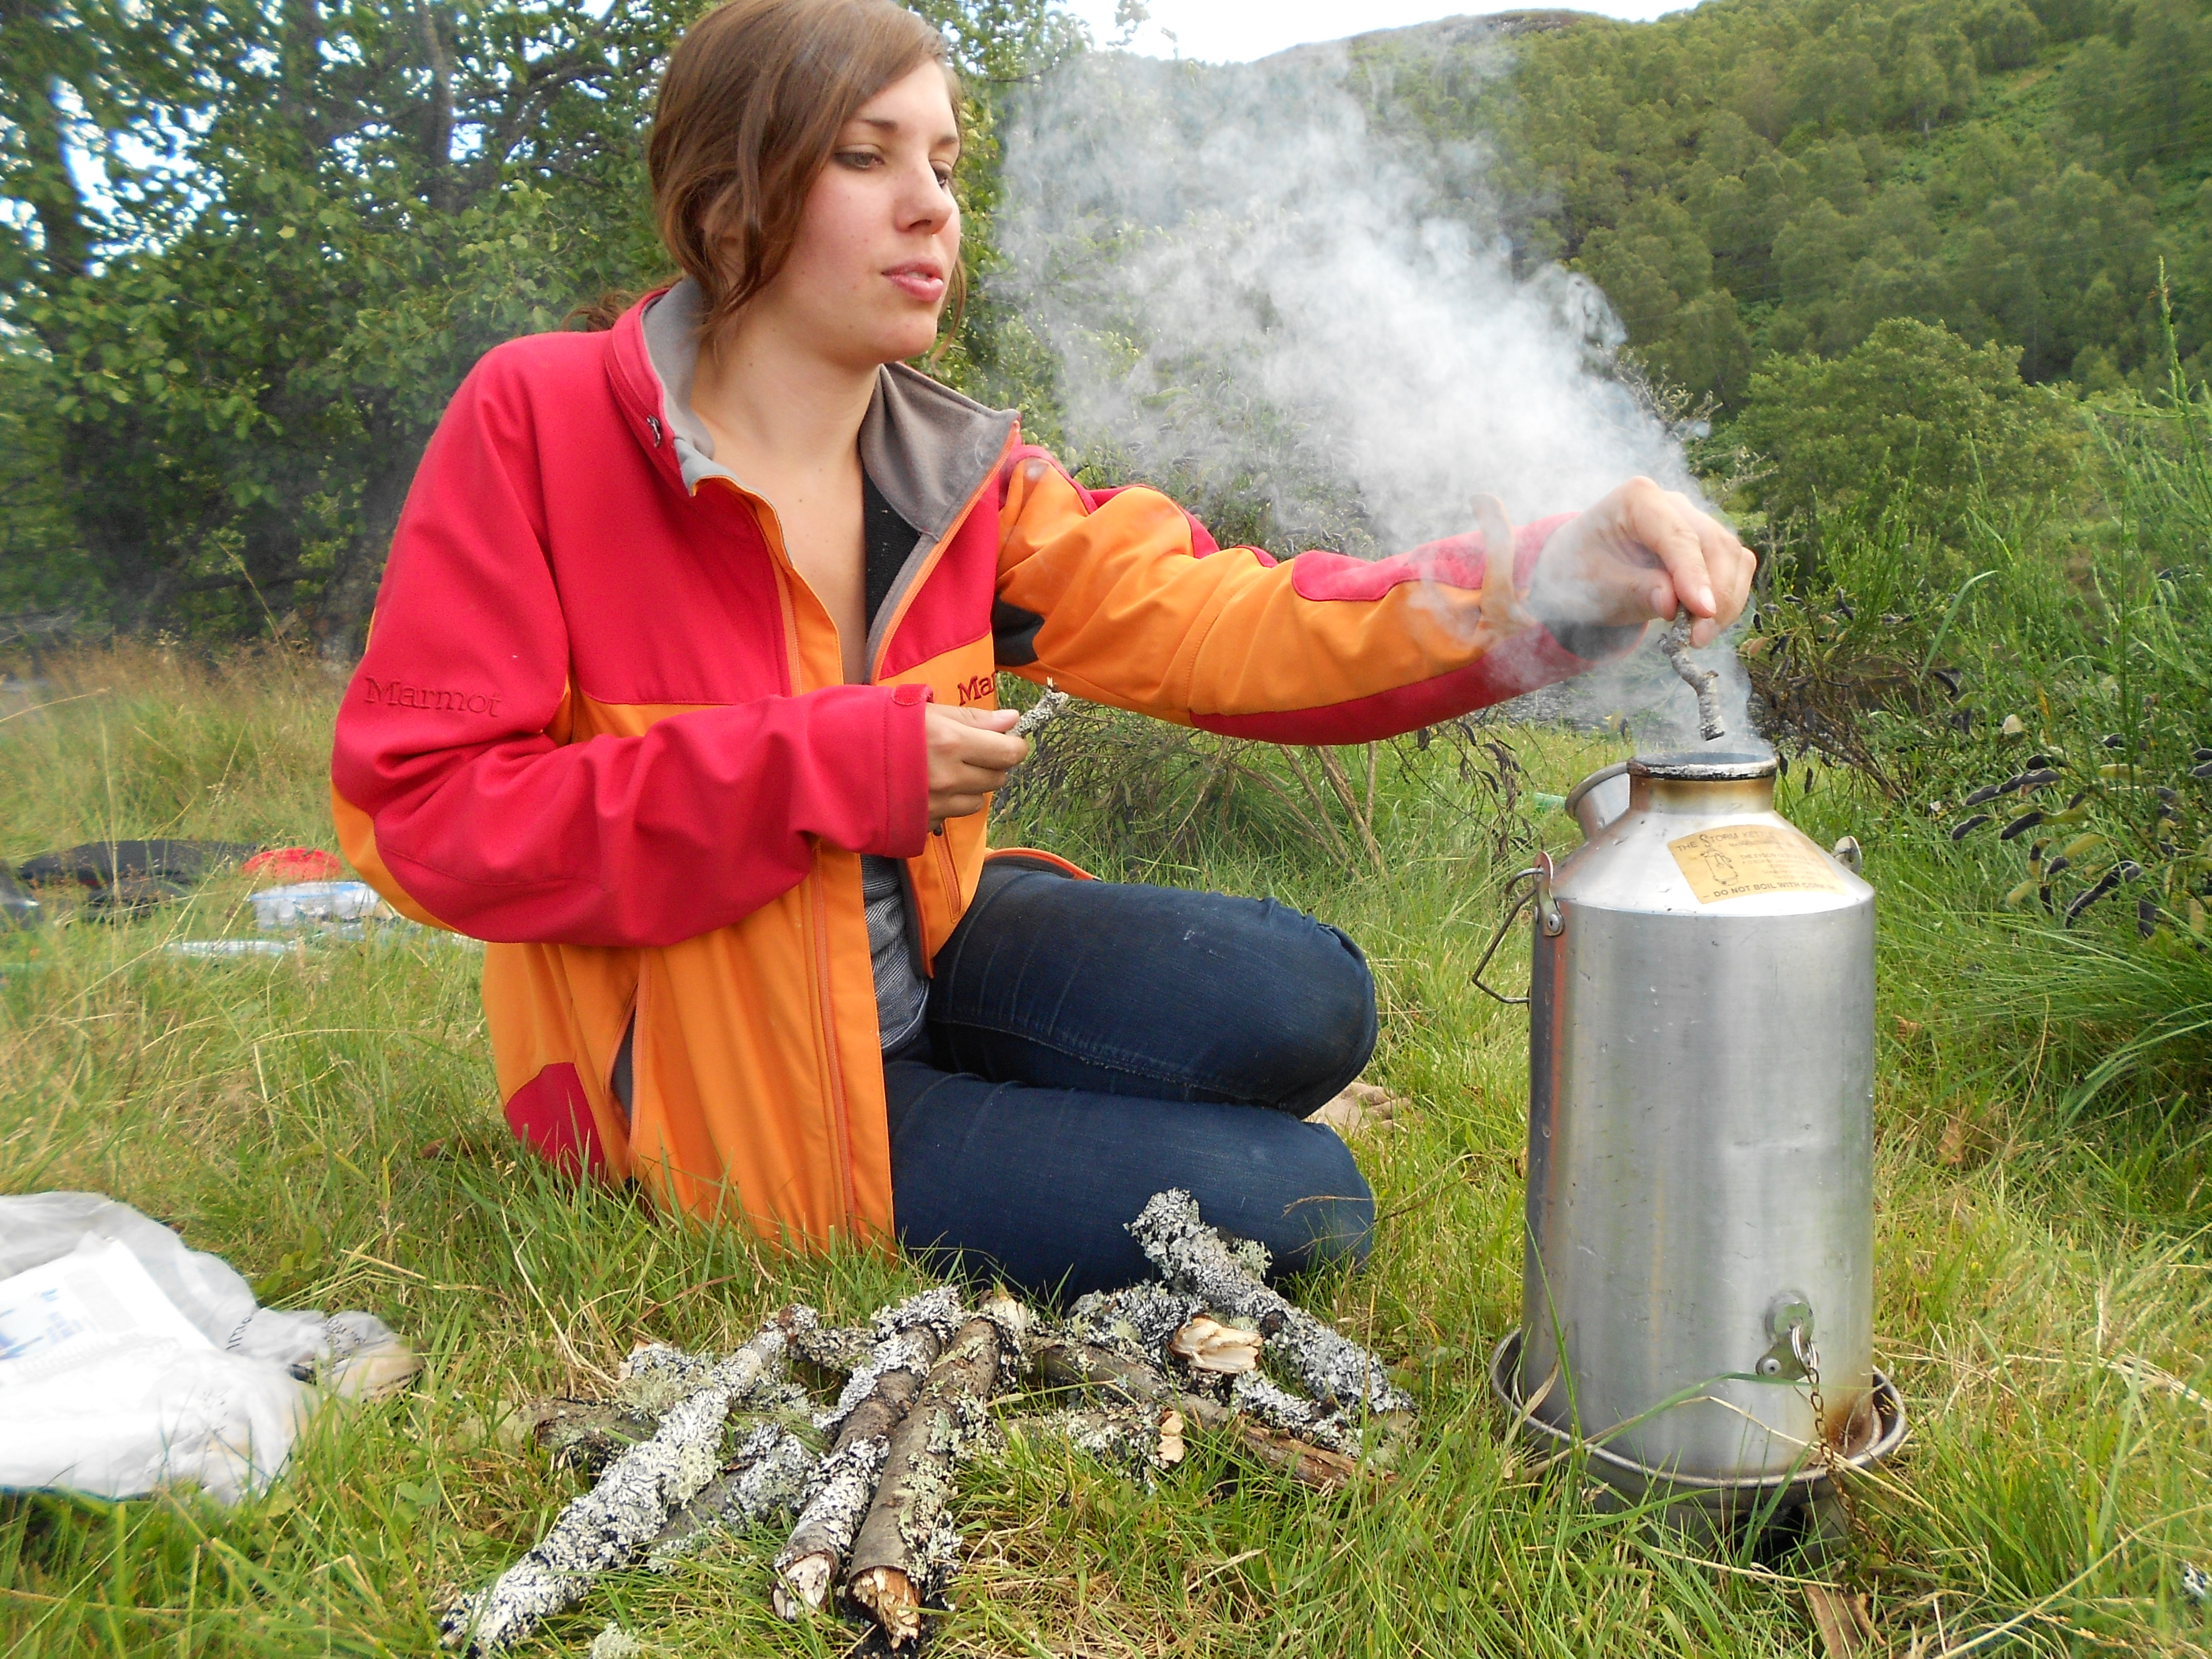 How to use a storm kettle | The Girl Outdoors